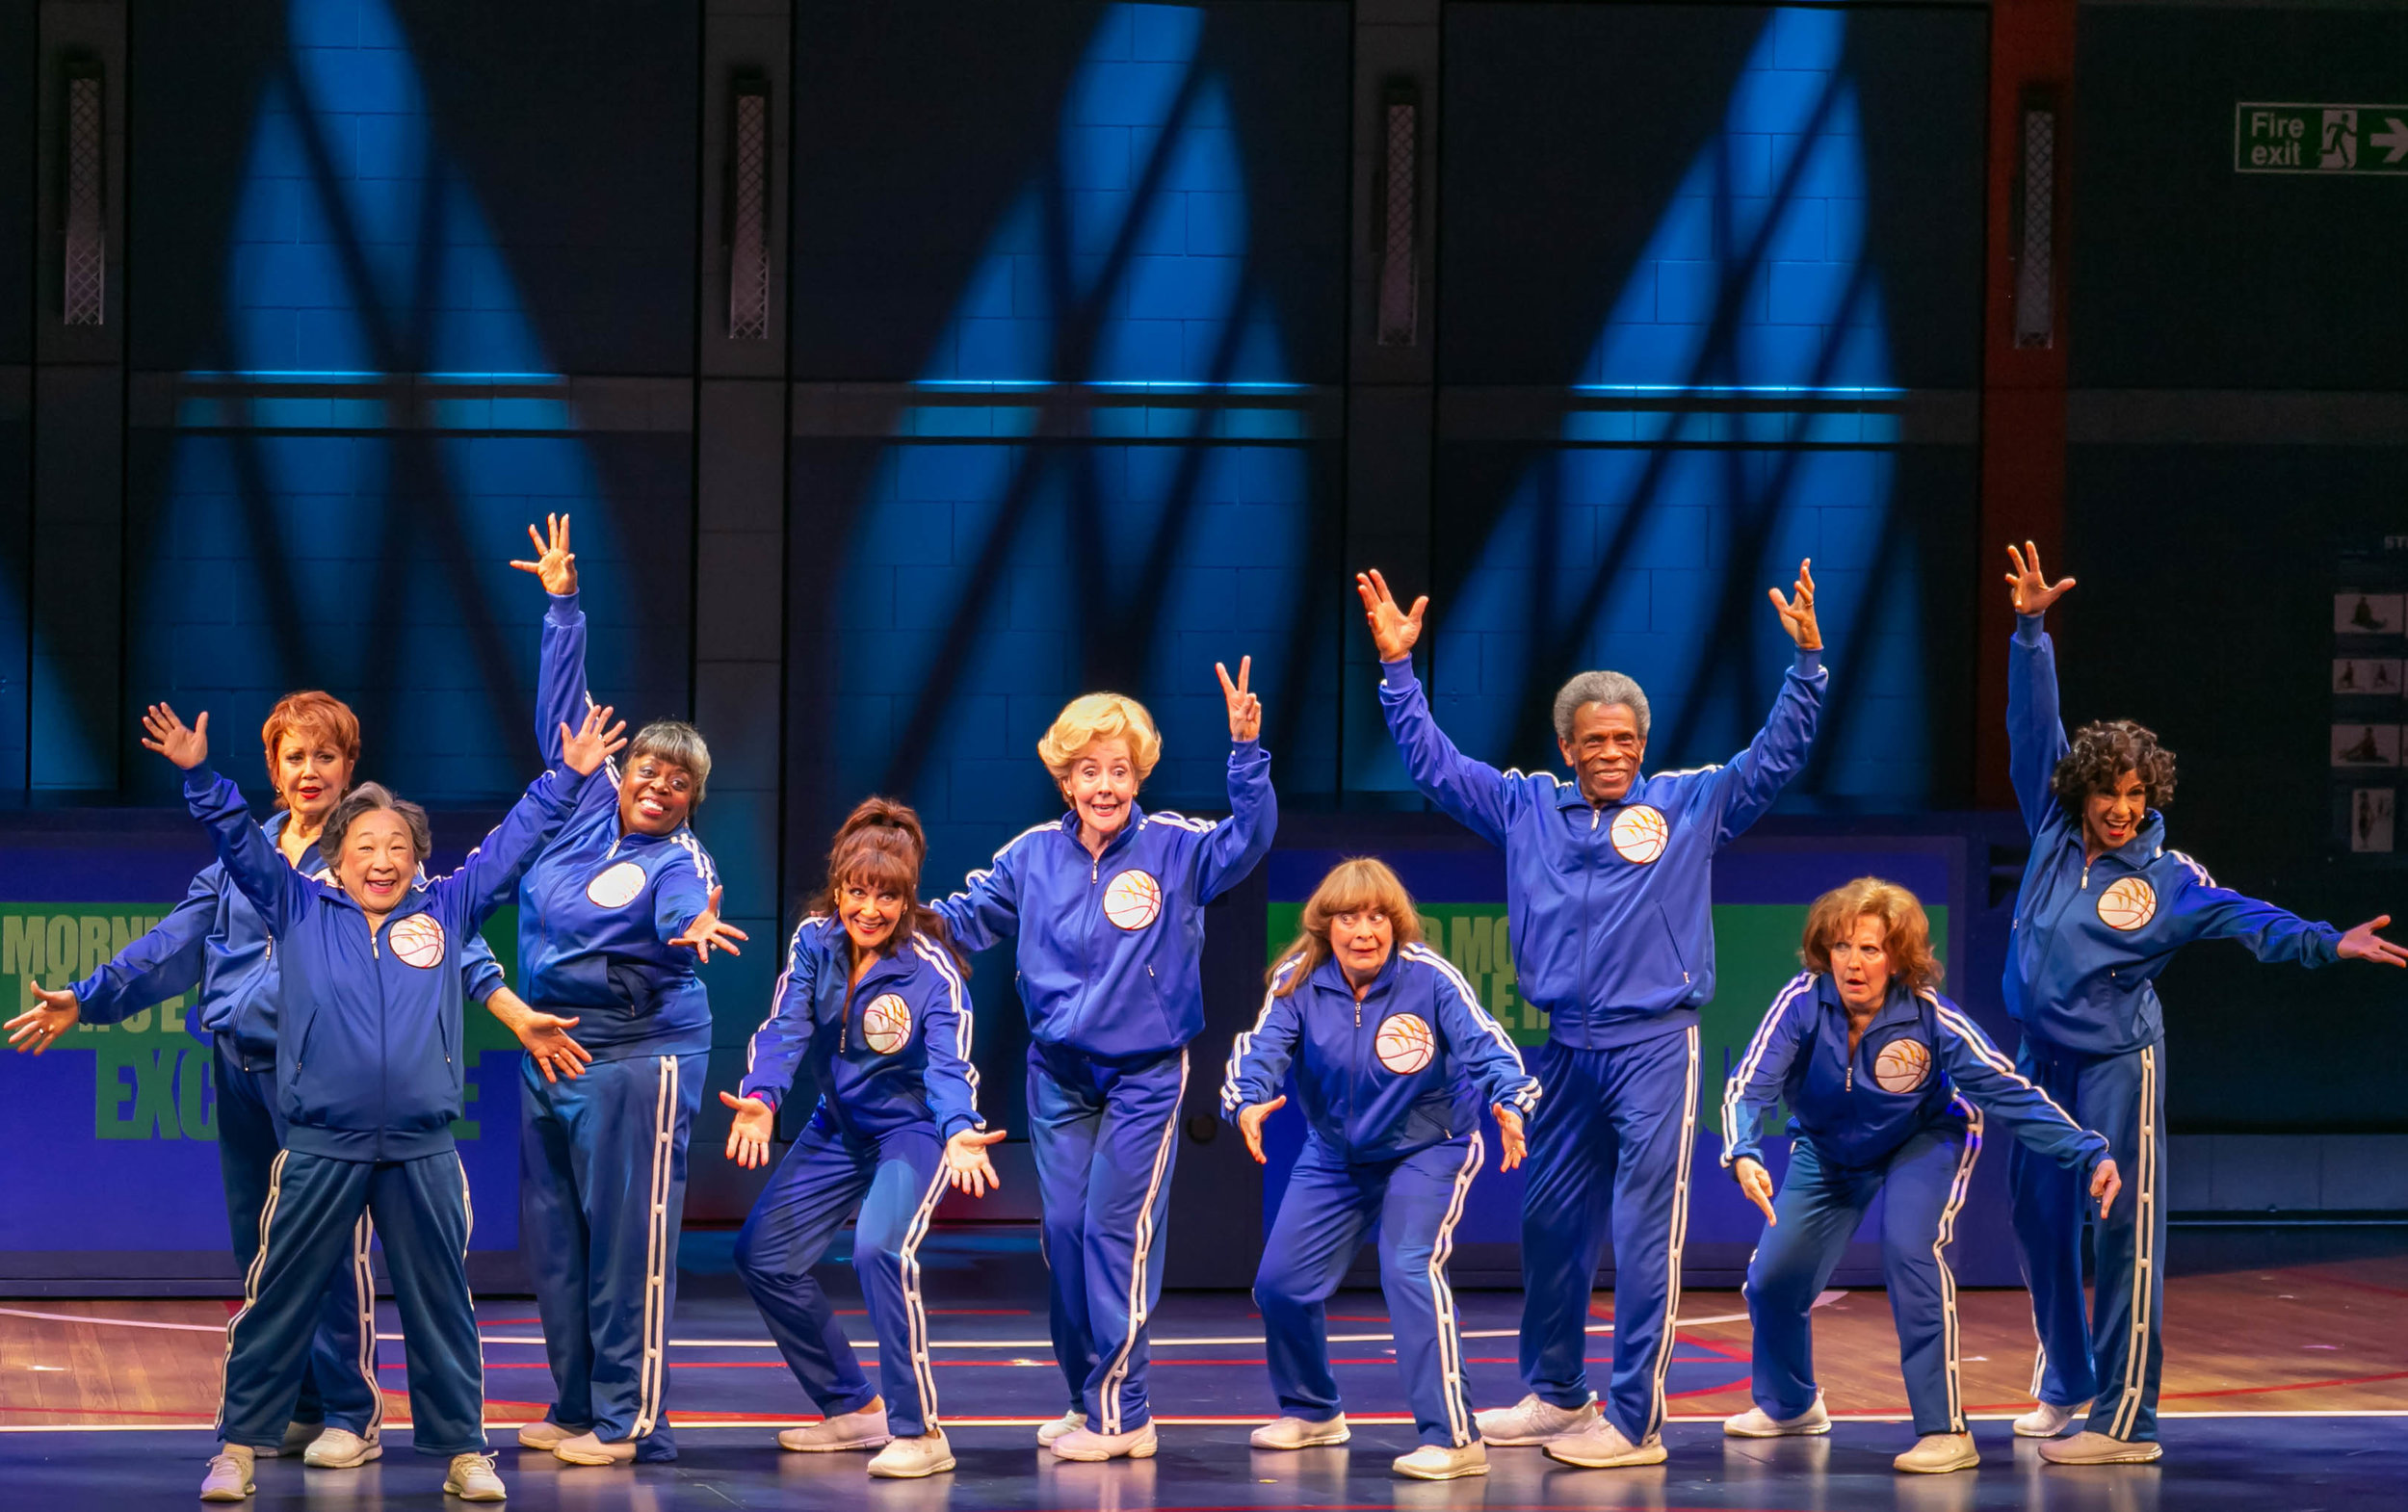 half-time-paper-mill-playhouse-production-photo-2018-half-time-photo-4-hr.jpg